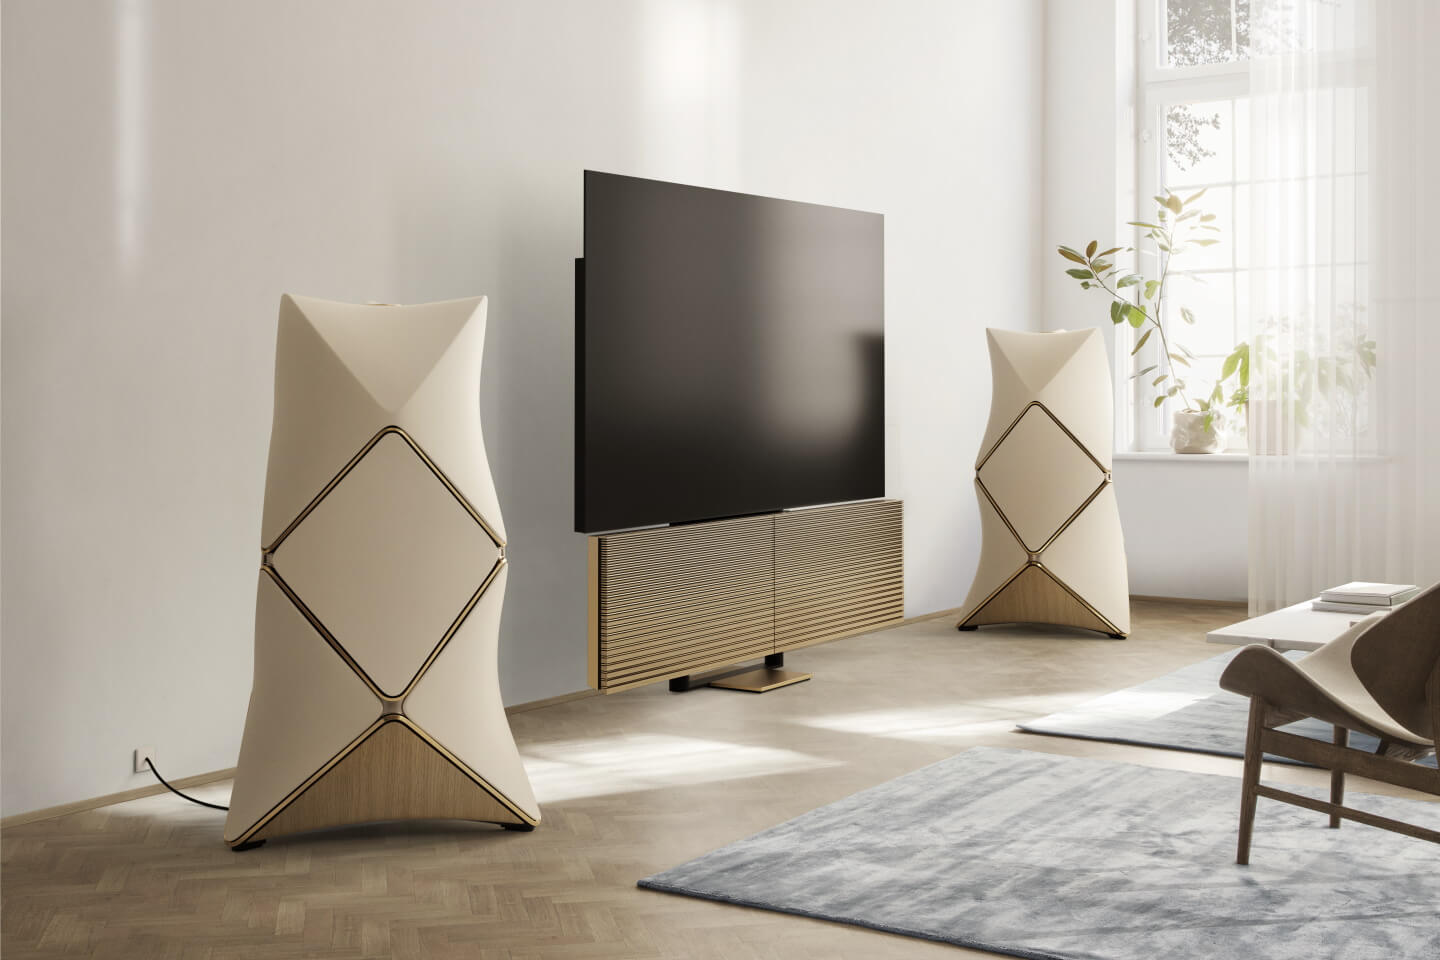 Bang & Olufsen BeoLab 90 and BeoVision Harmony gold tone